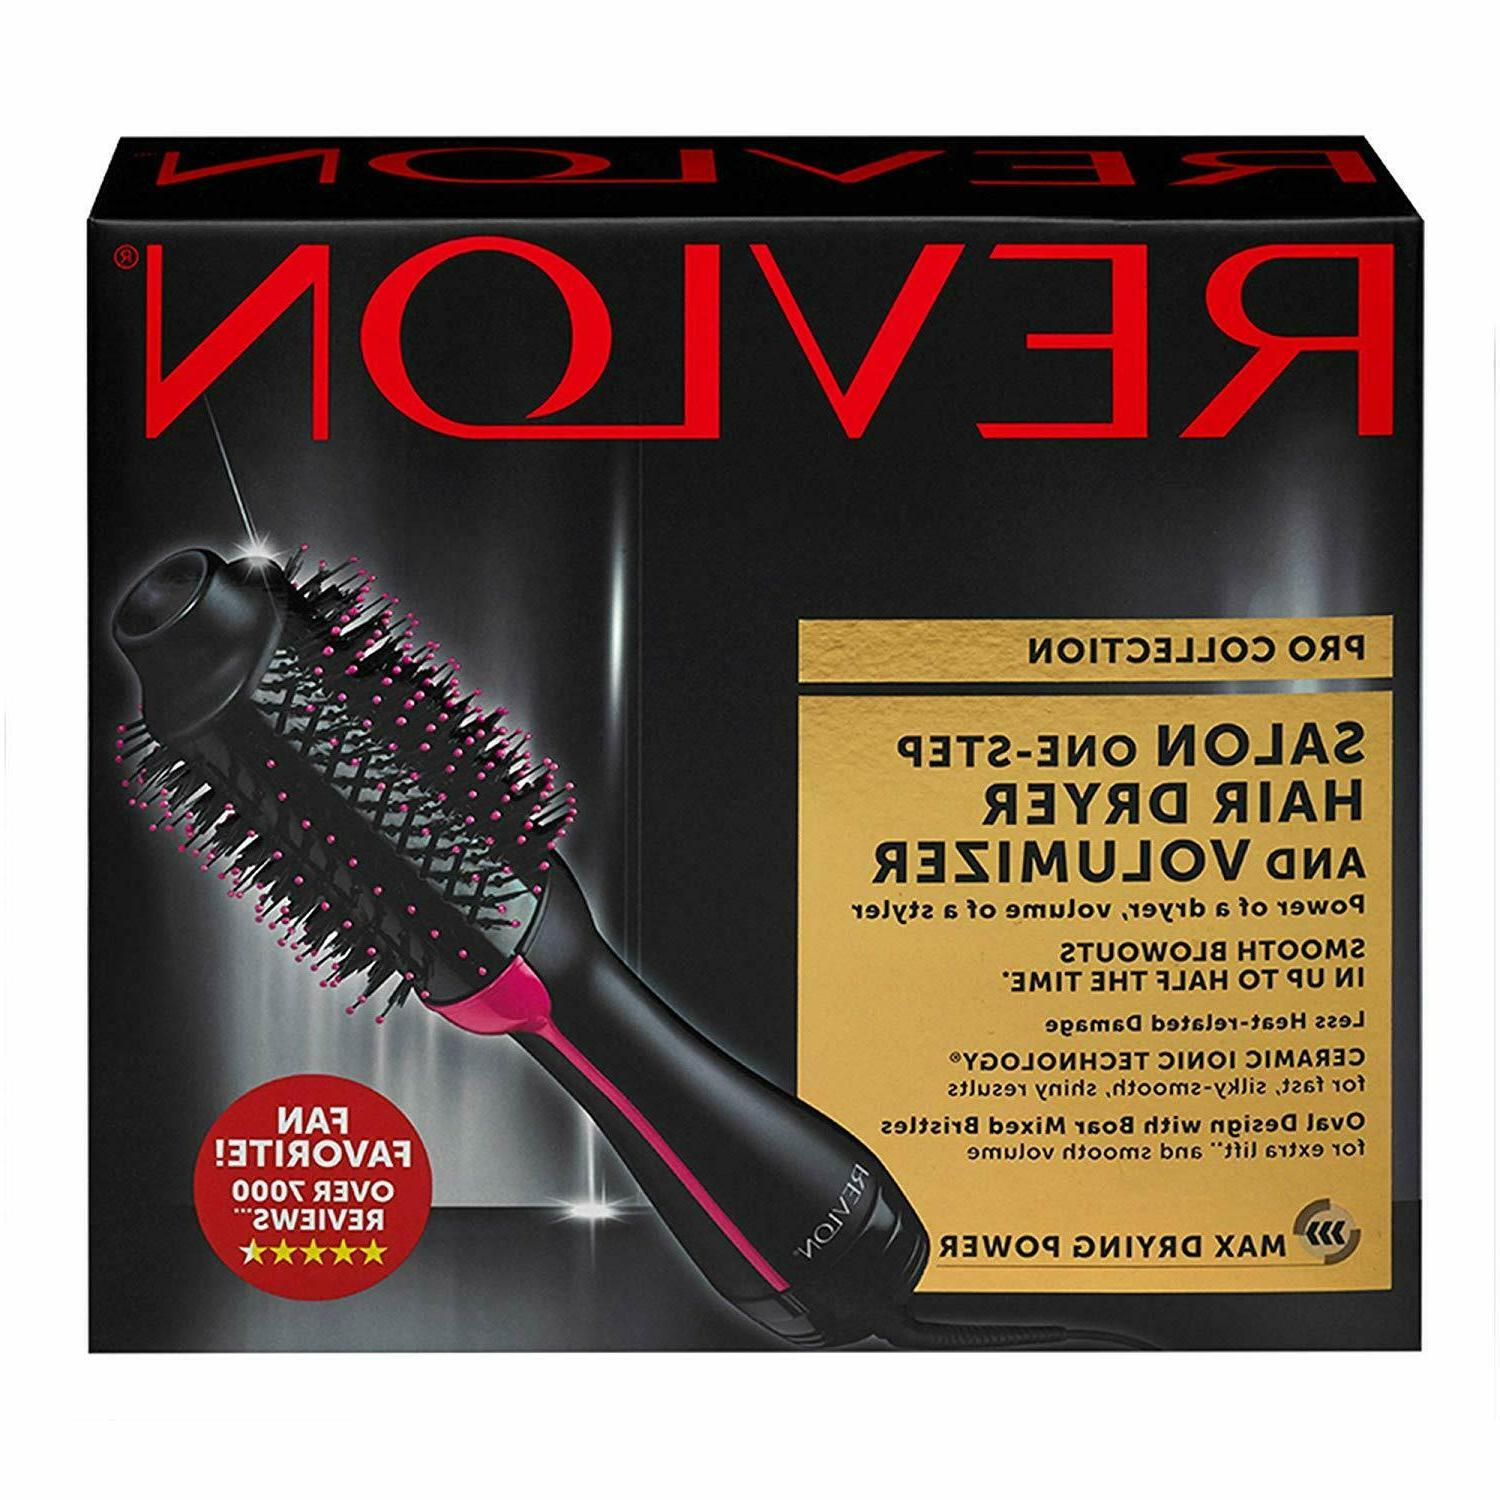 Revlon Dryer Volumizer Air Black